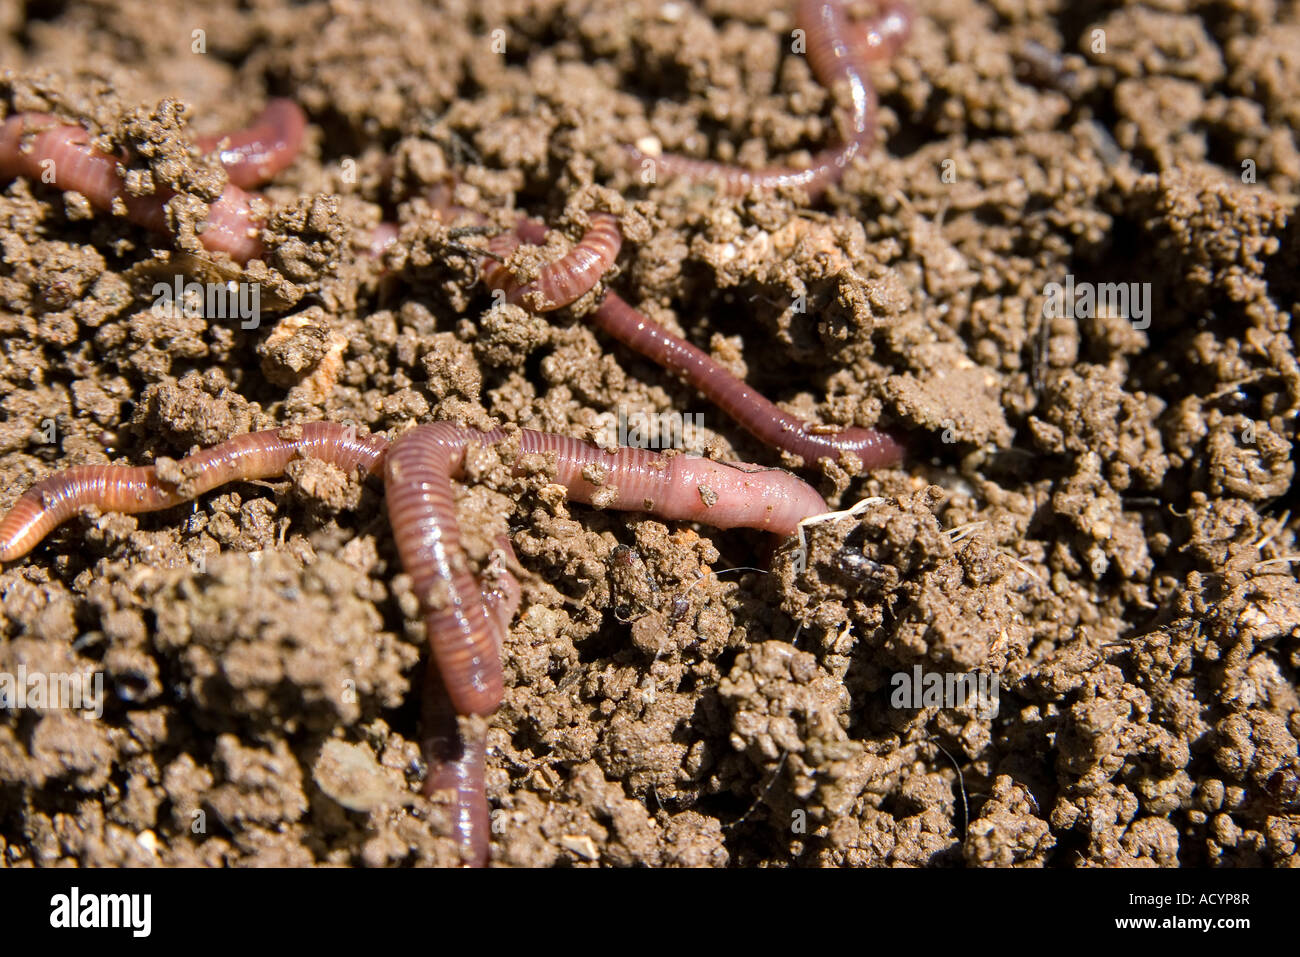 composting worms burrowing through the dirt in the garden - Stock Image